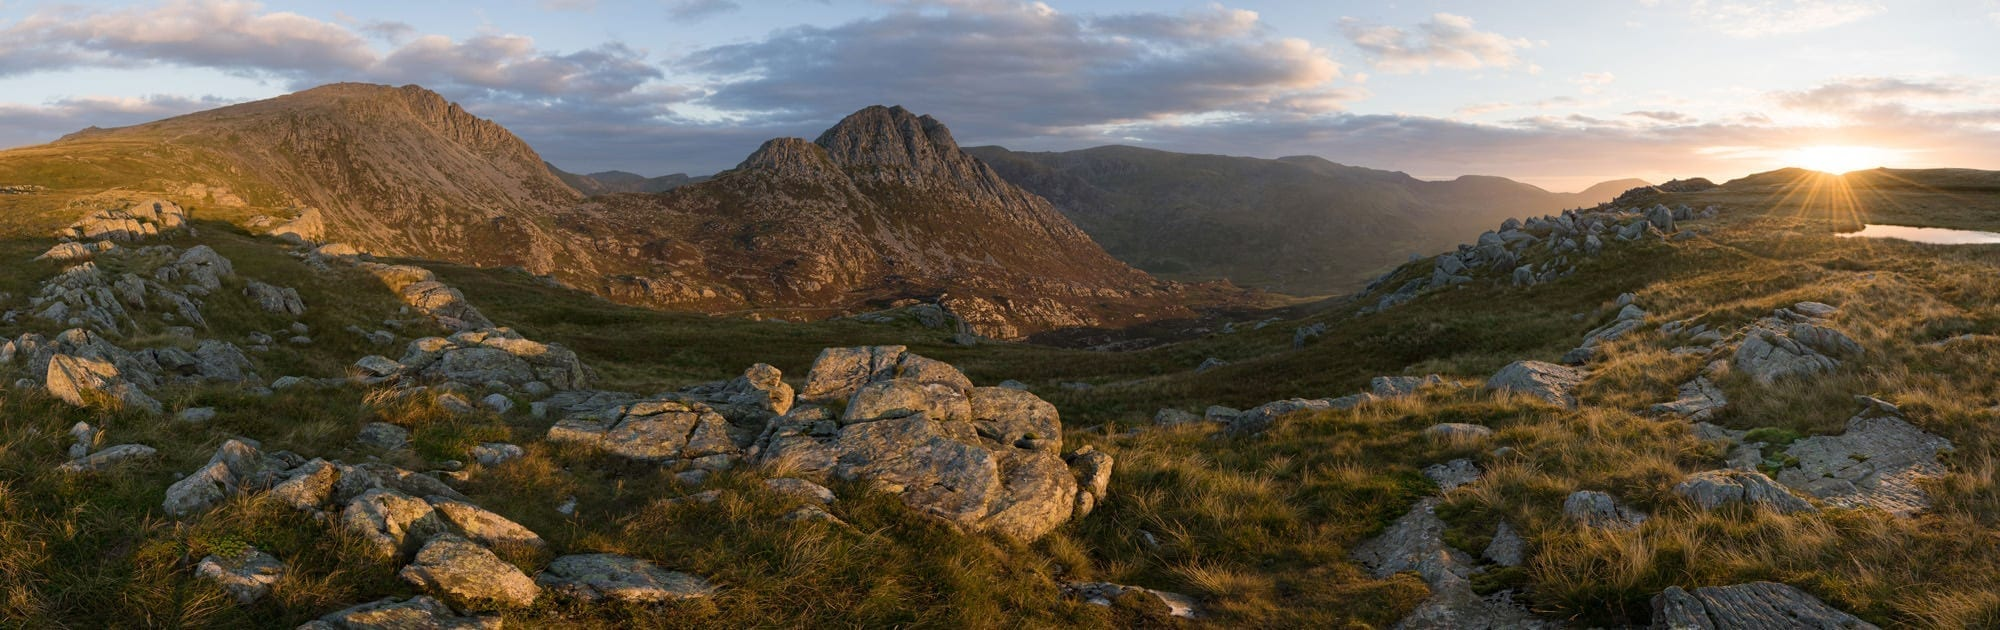 Llyn Y Caseg Fraith Sunrise Panoramic - Snowdonia Wild Camping Photography Workshop